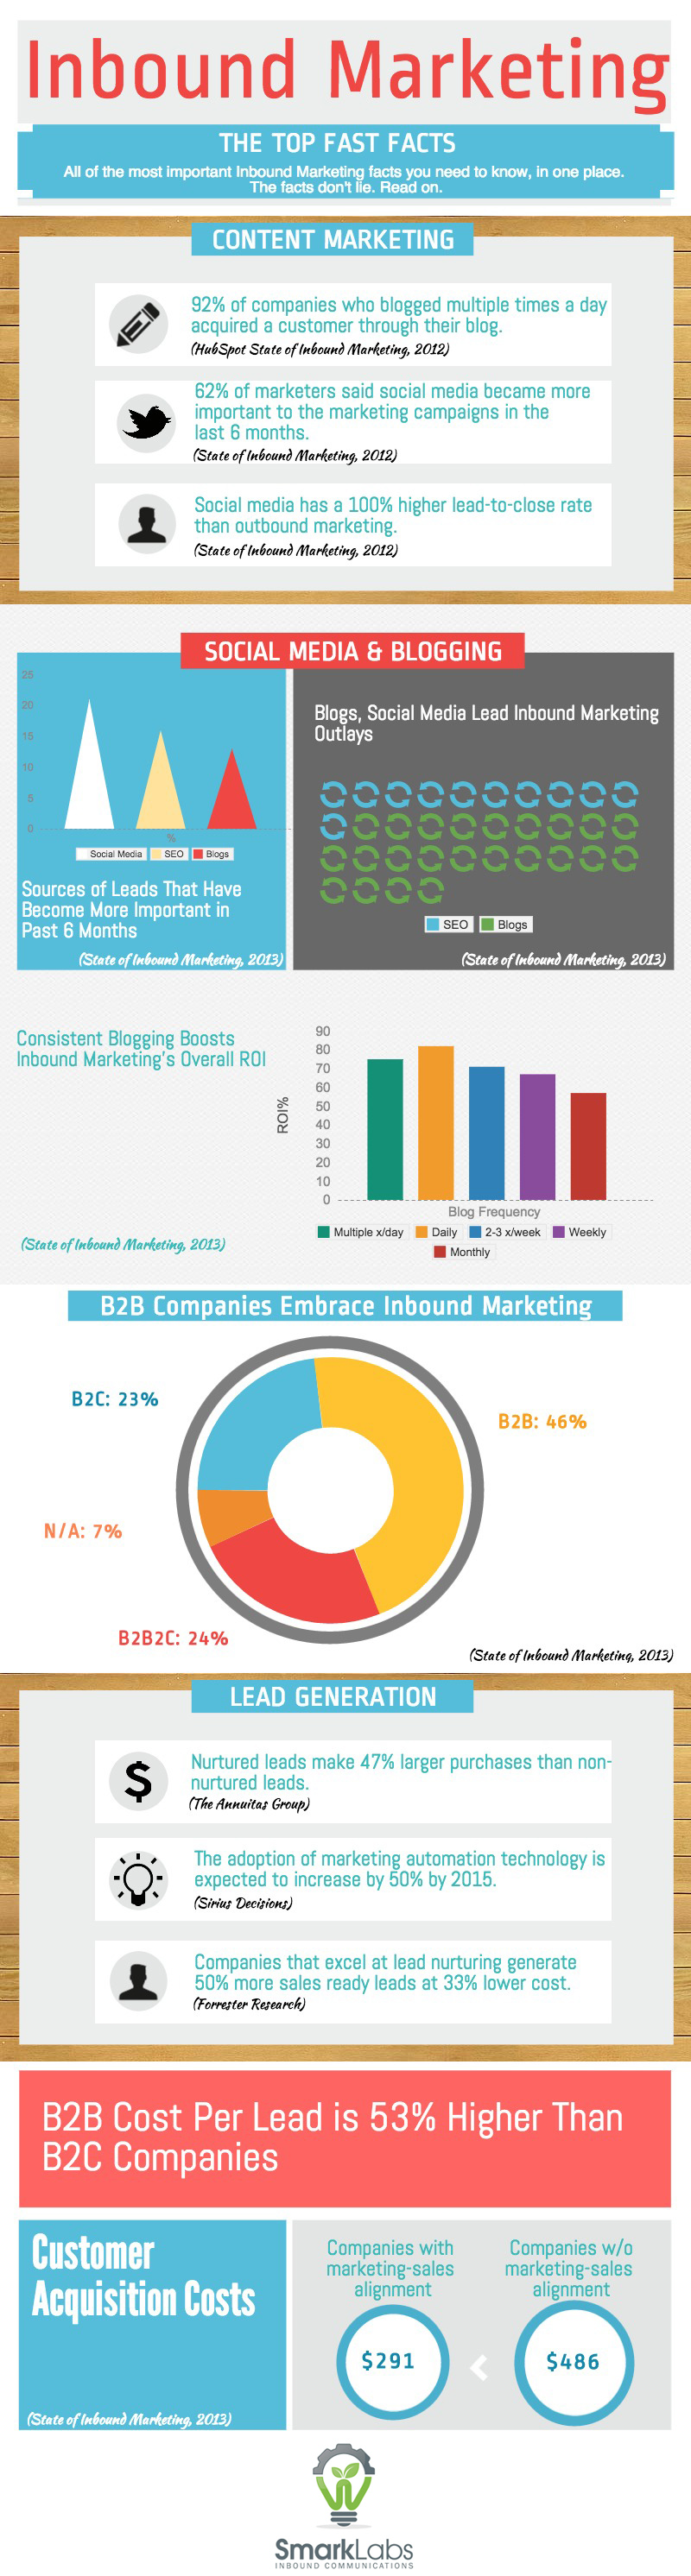 Inbound_Marketing_Fast_Facts